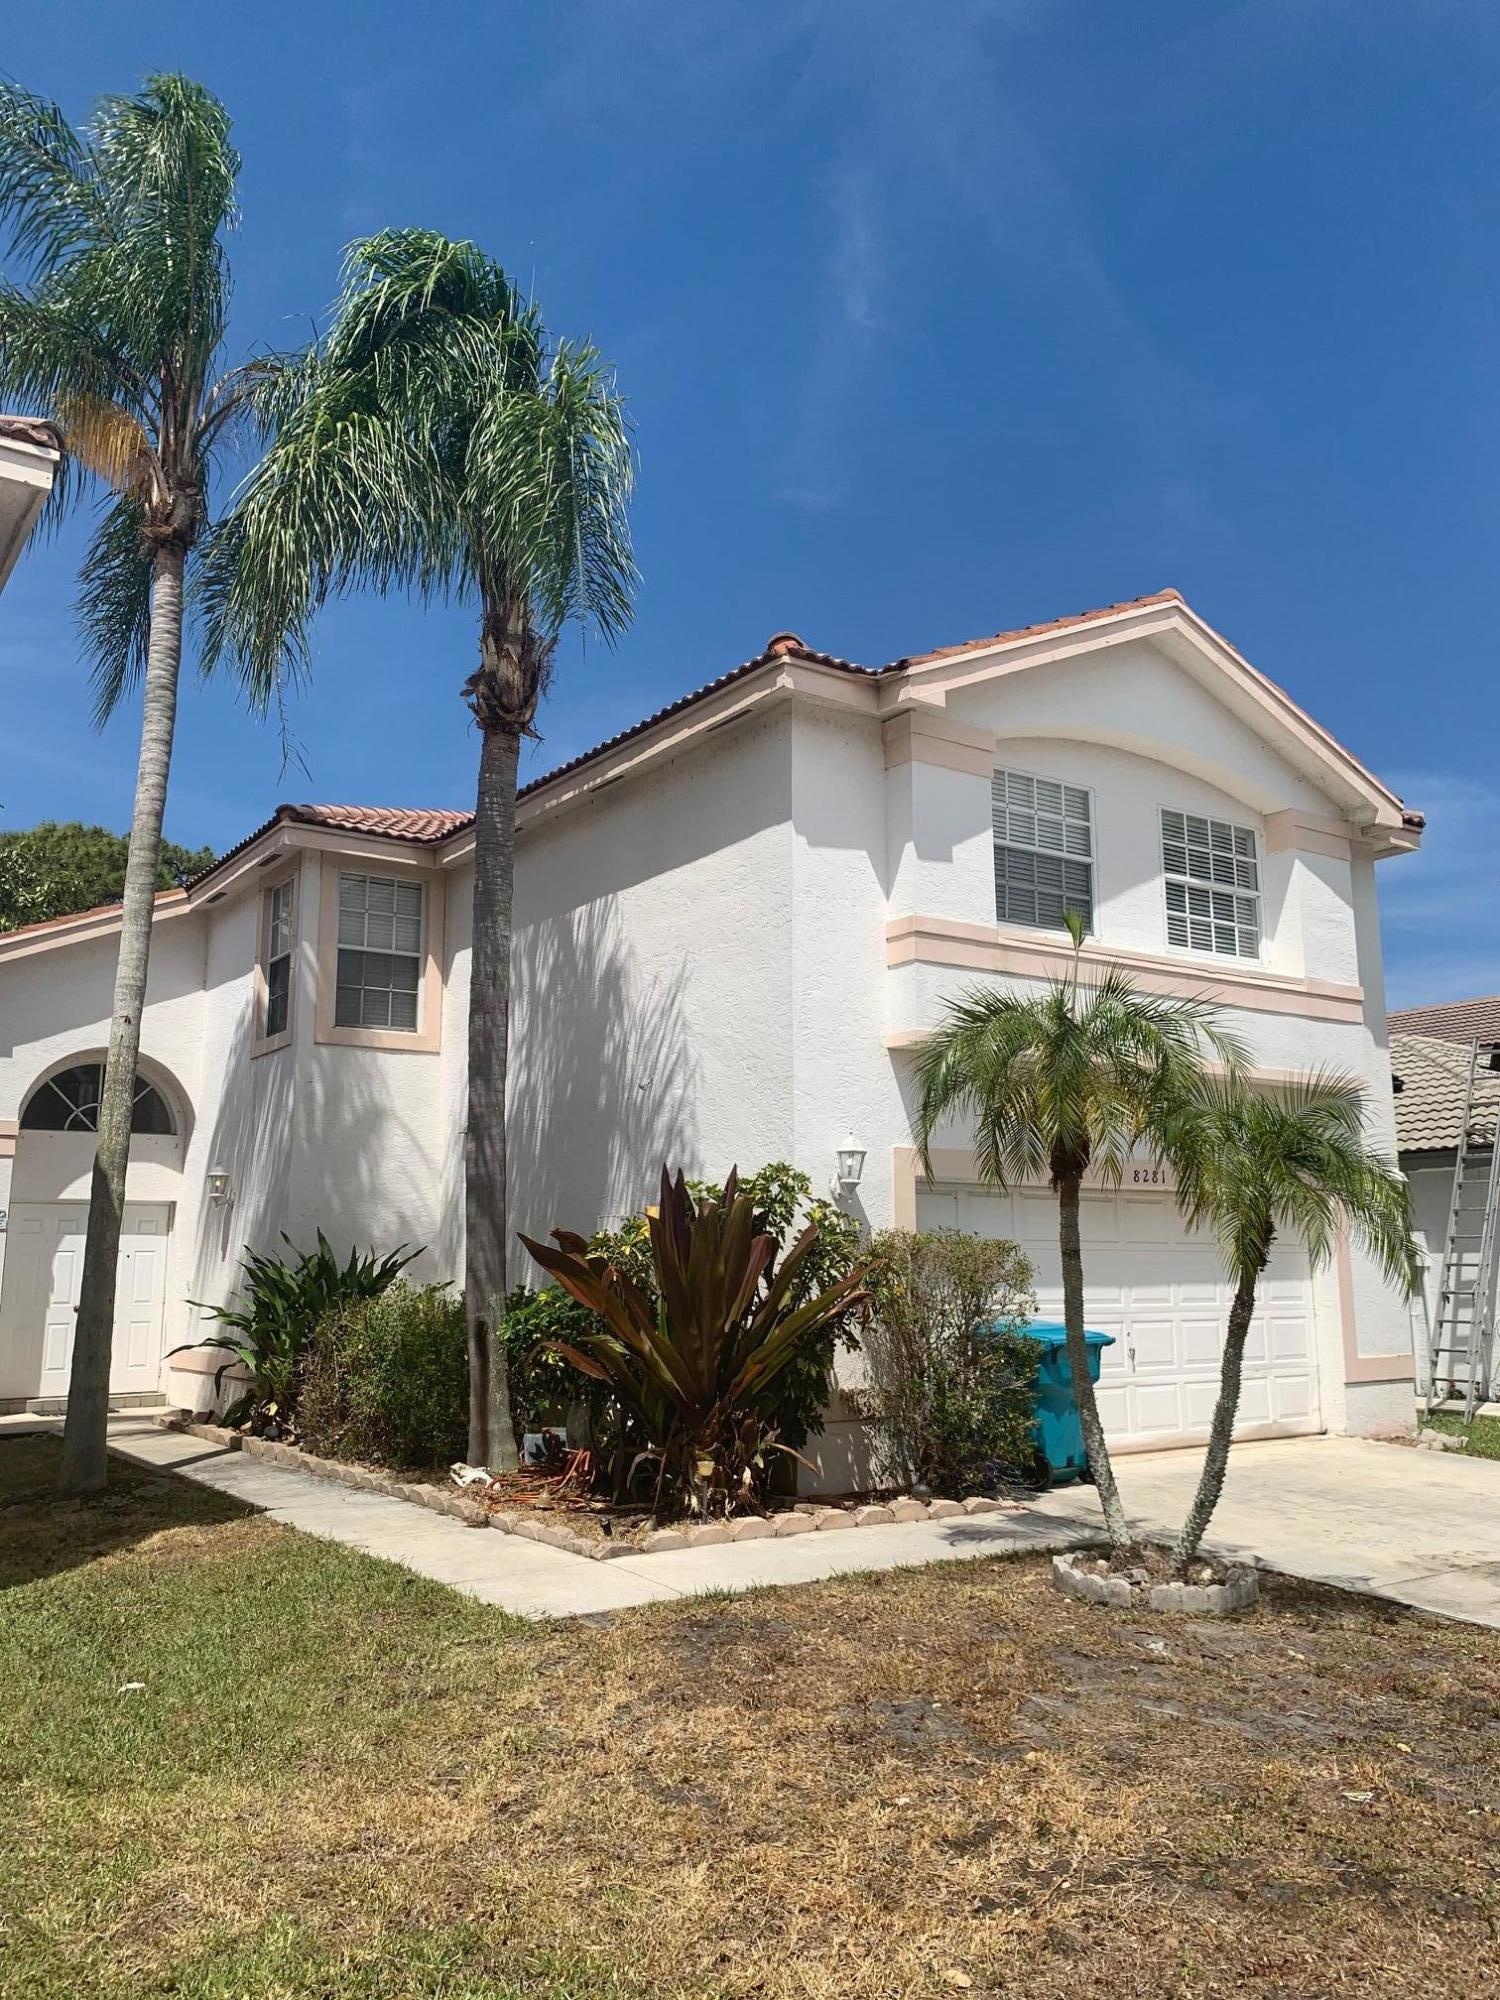 8281 Bermuda Sound Way, Boynton Beach, Florida 33436, 4 Bedrooms Bedrooms, ,2 BathroomsBathrooms,Residential,For Sale,Bermuda Sound,RX-10706144